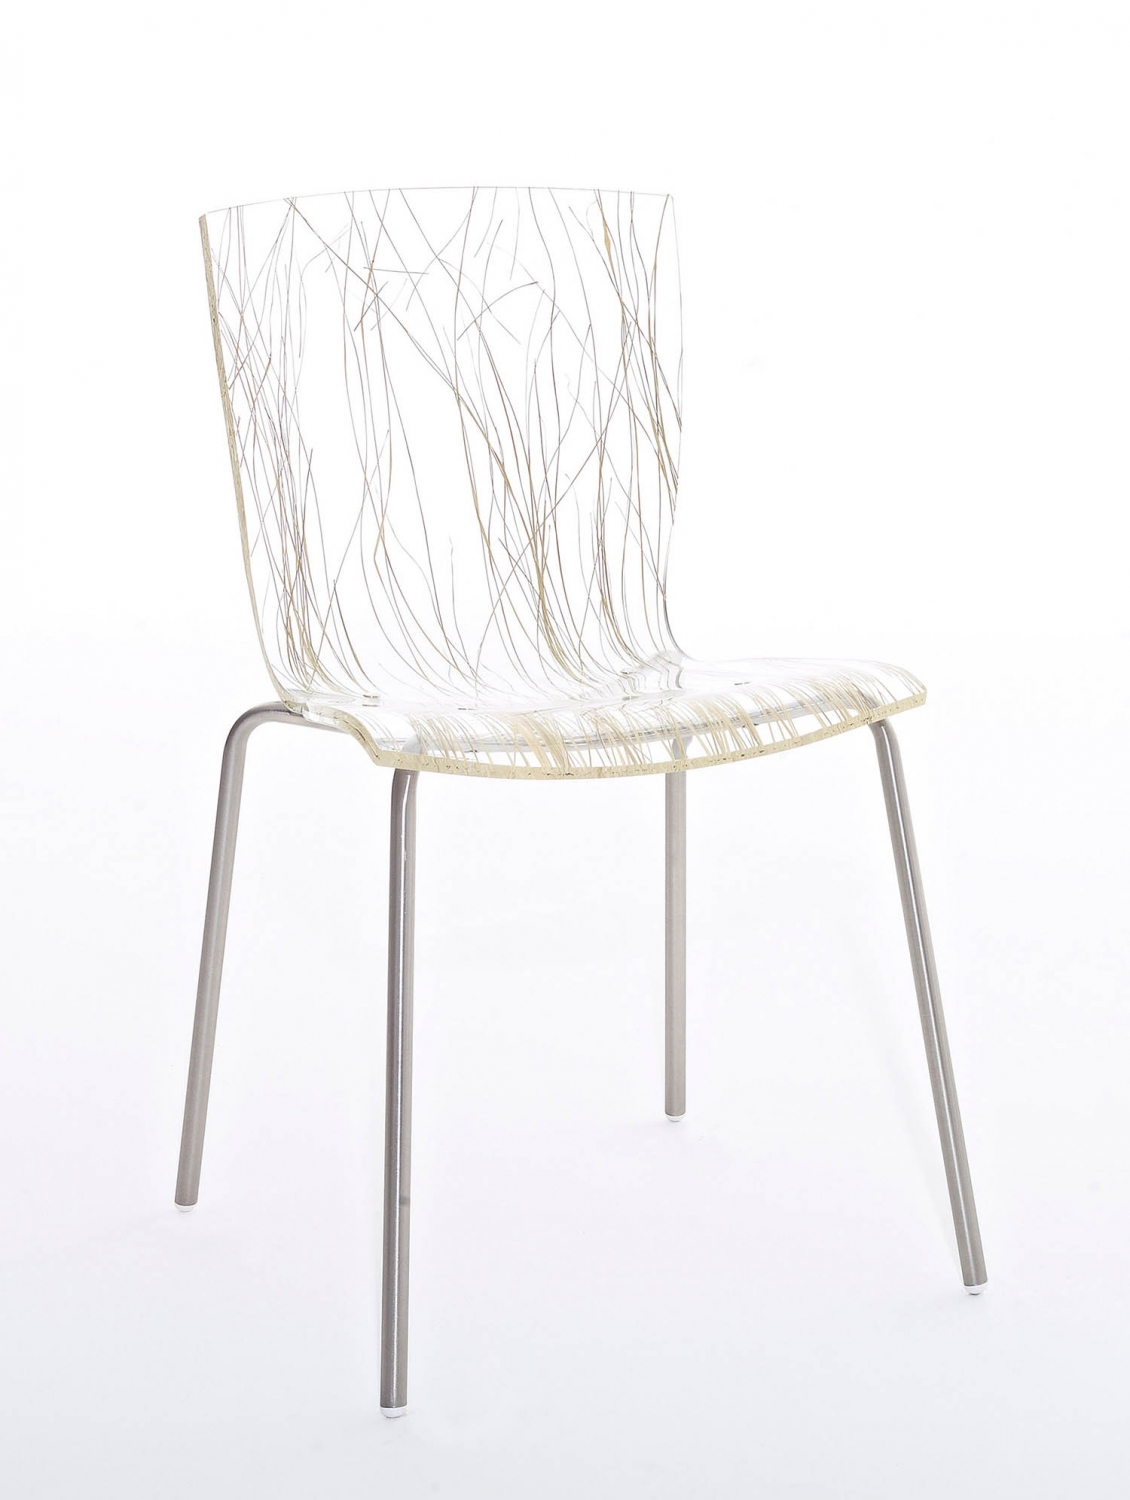 Chair with varnished or chrome-plated steel frame. Seat: methacrylate.